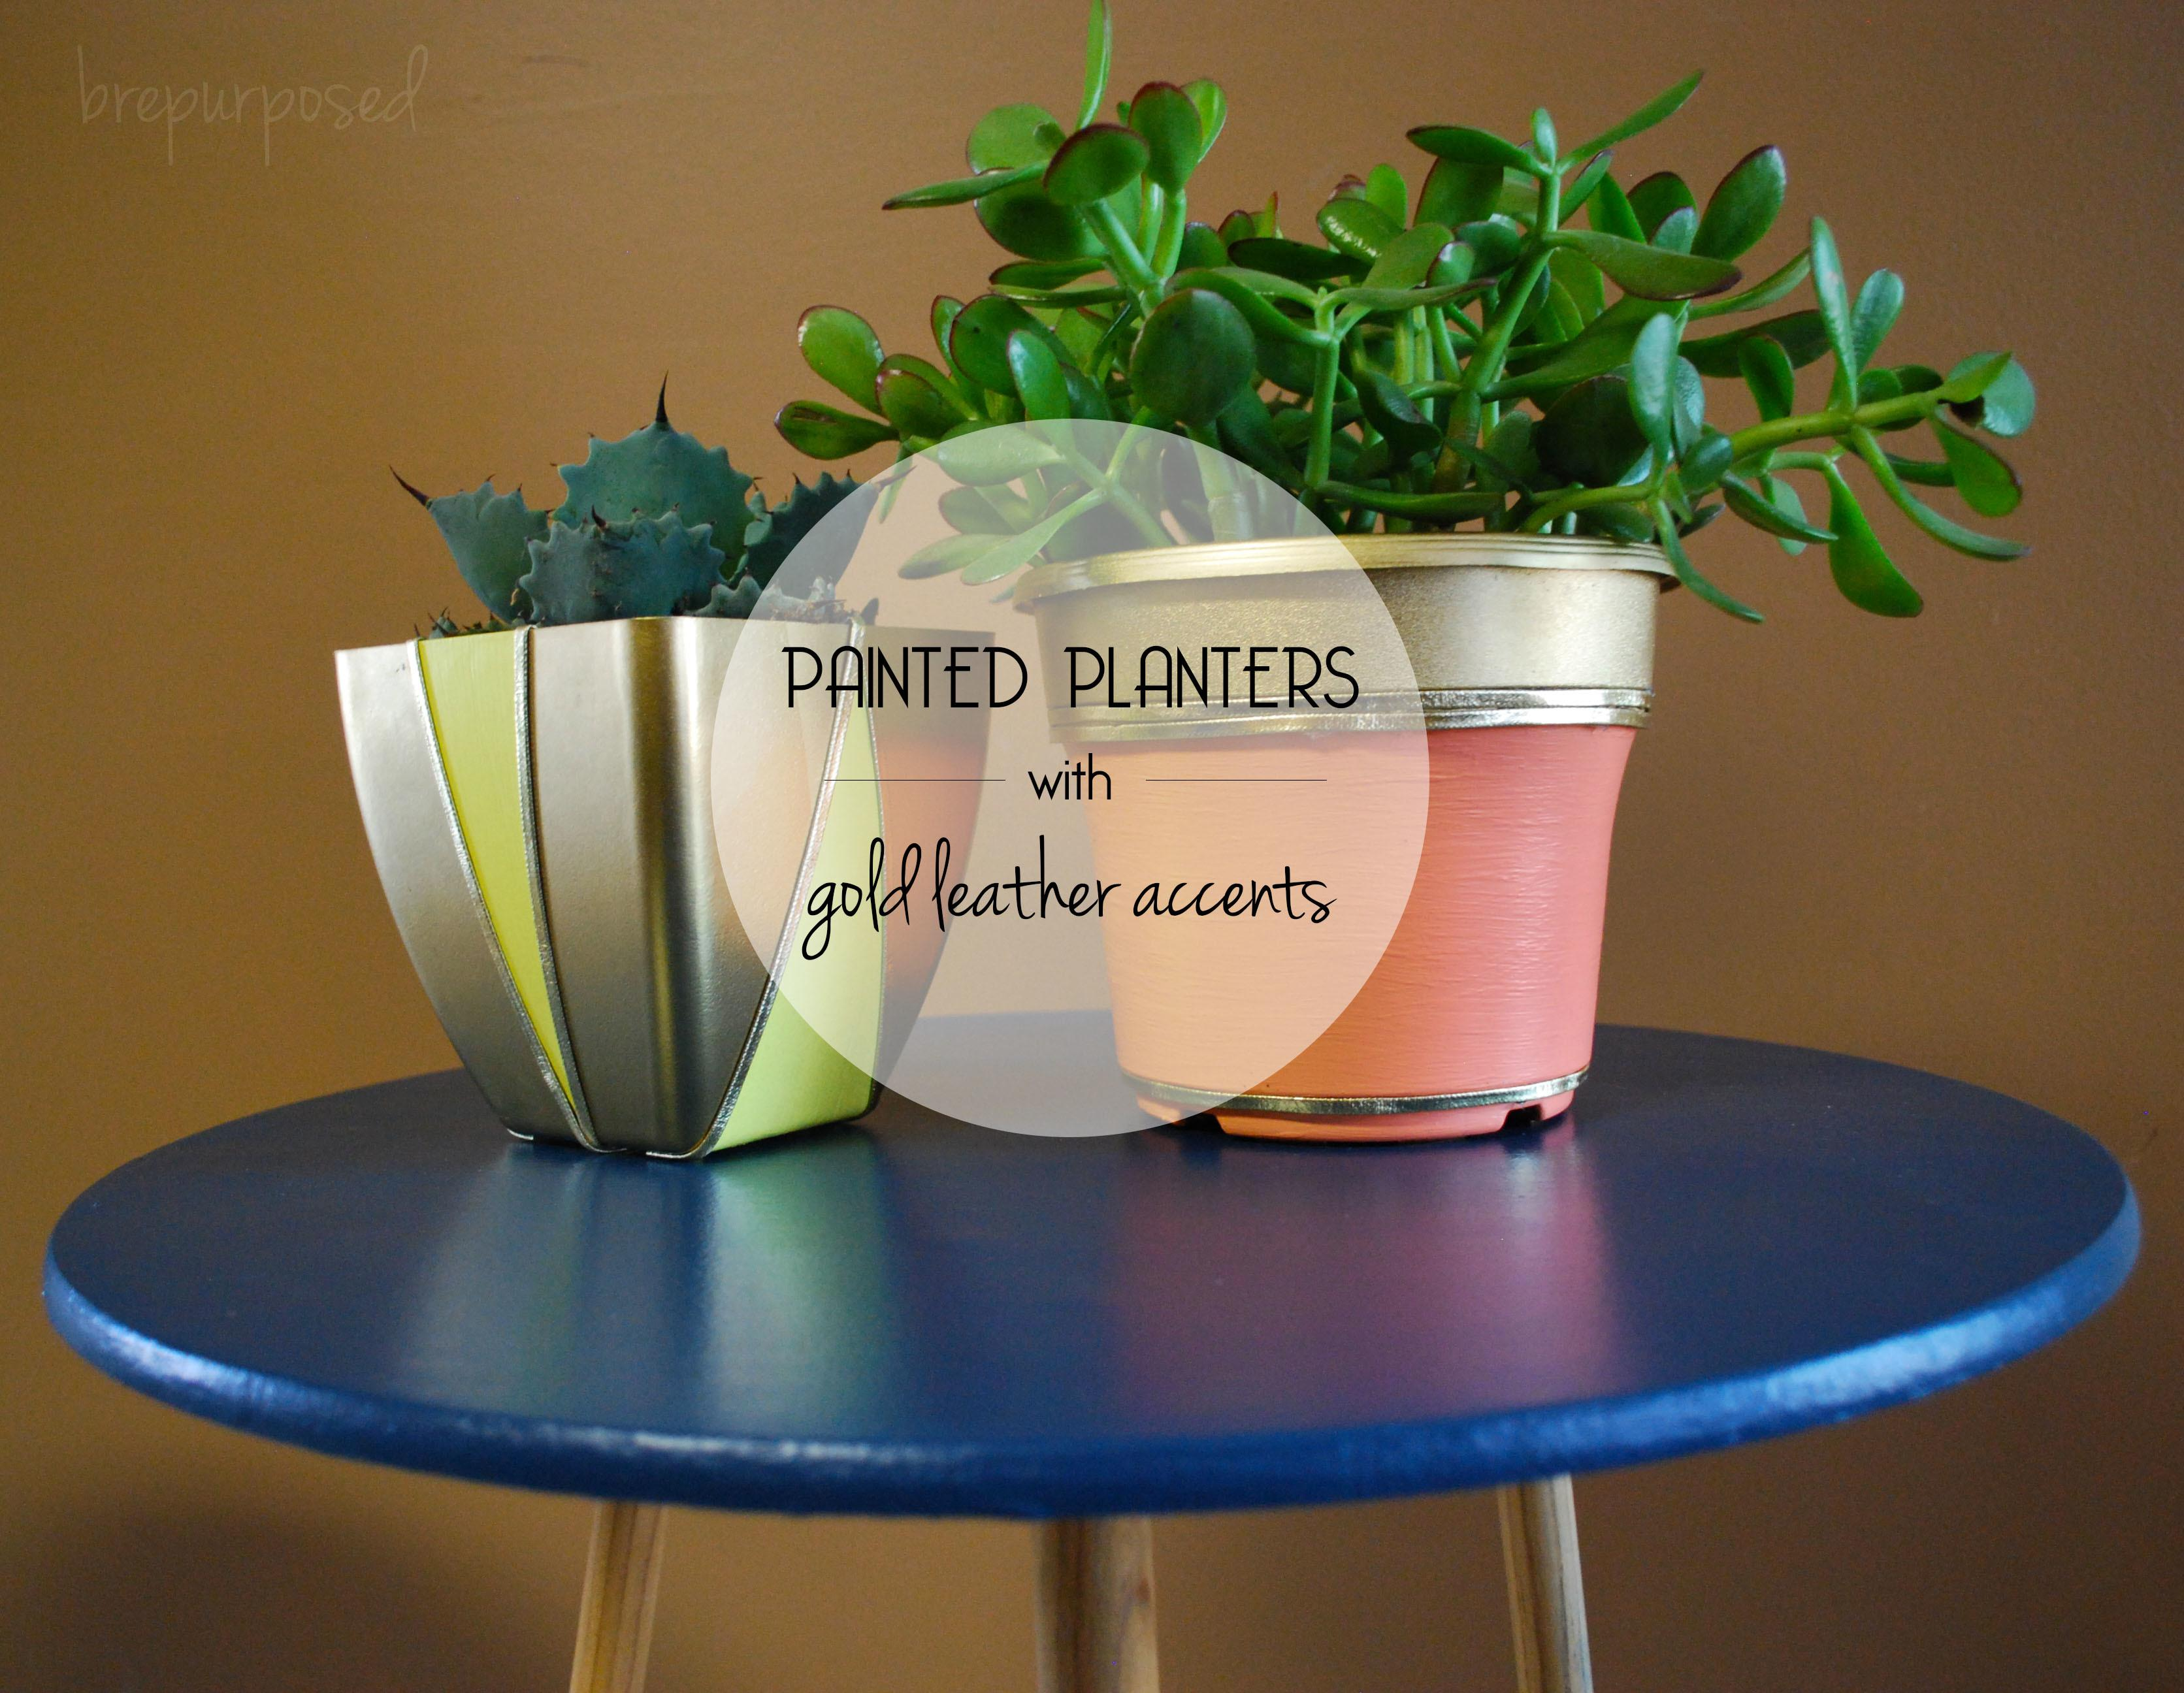 Diy Painted Planters Gold Leather Accents Brepurposed